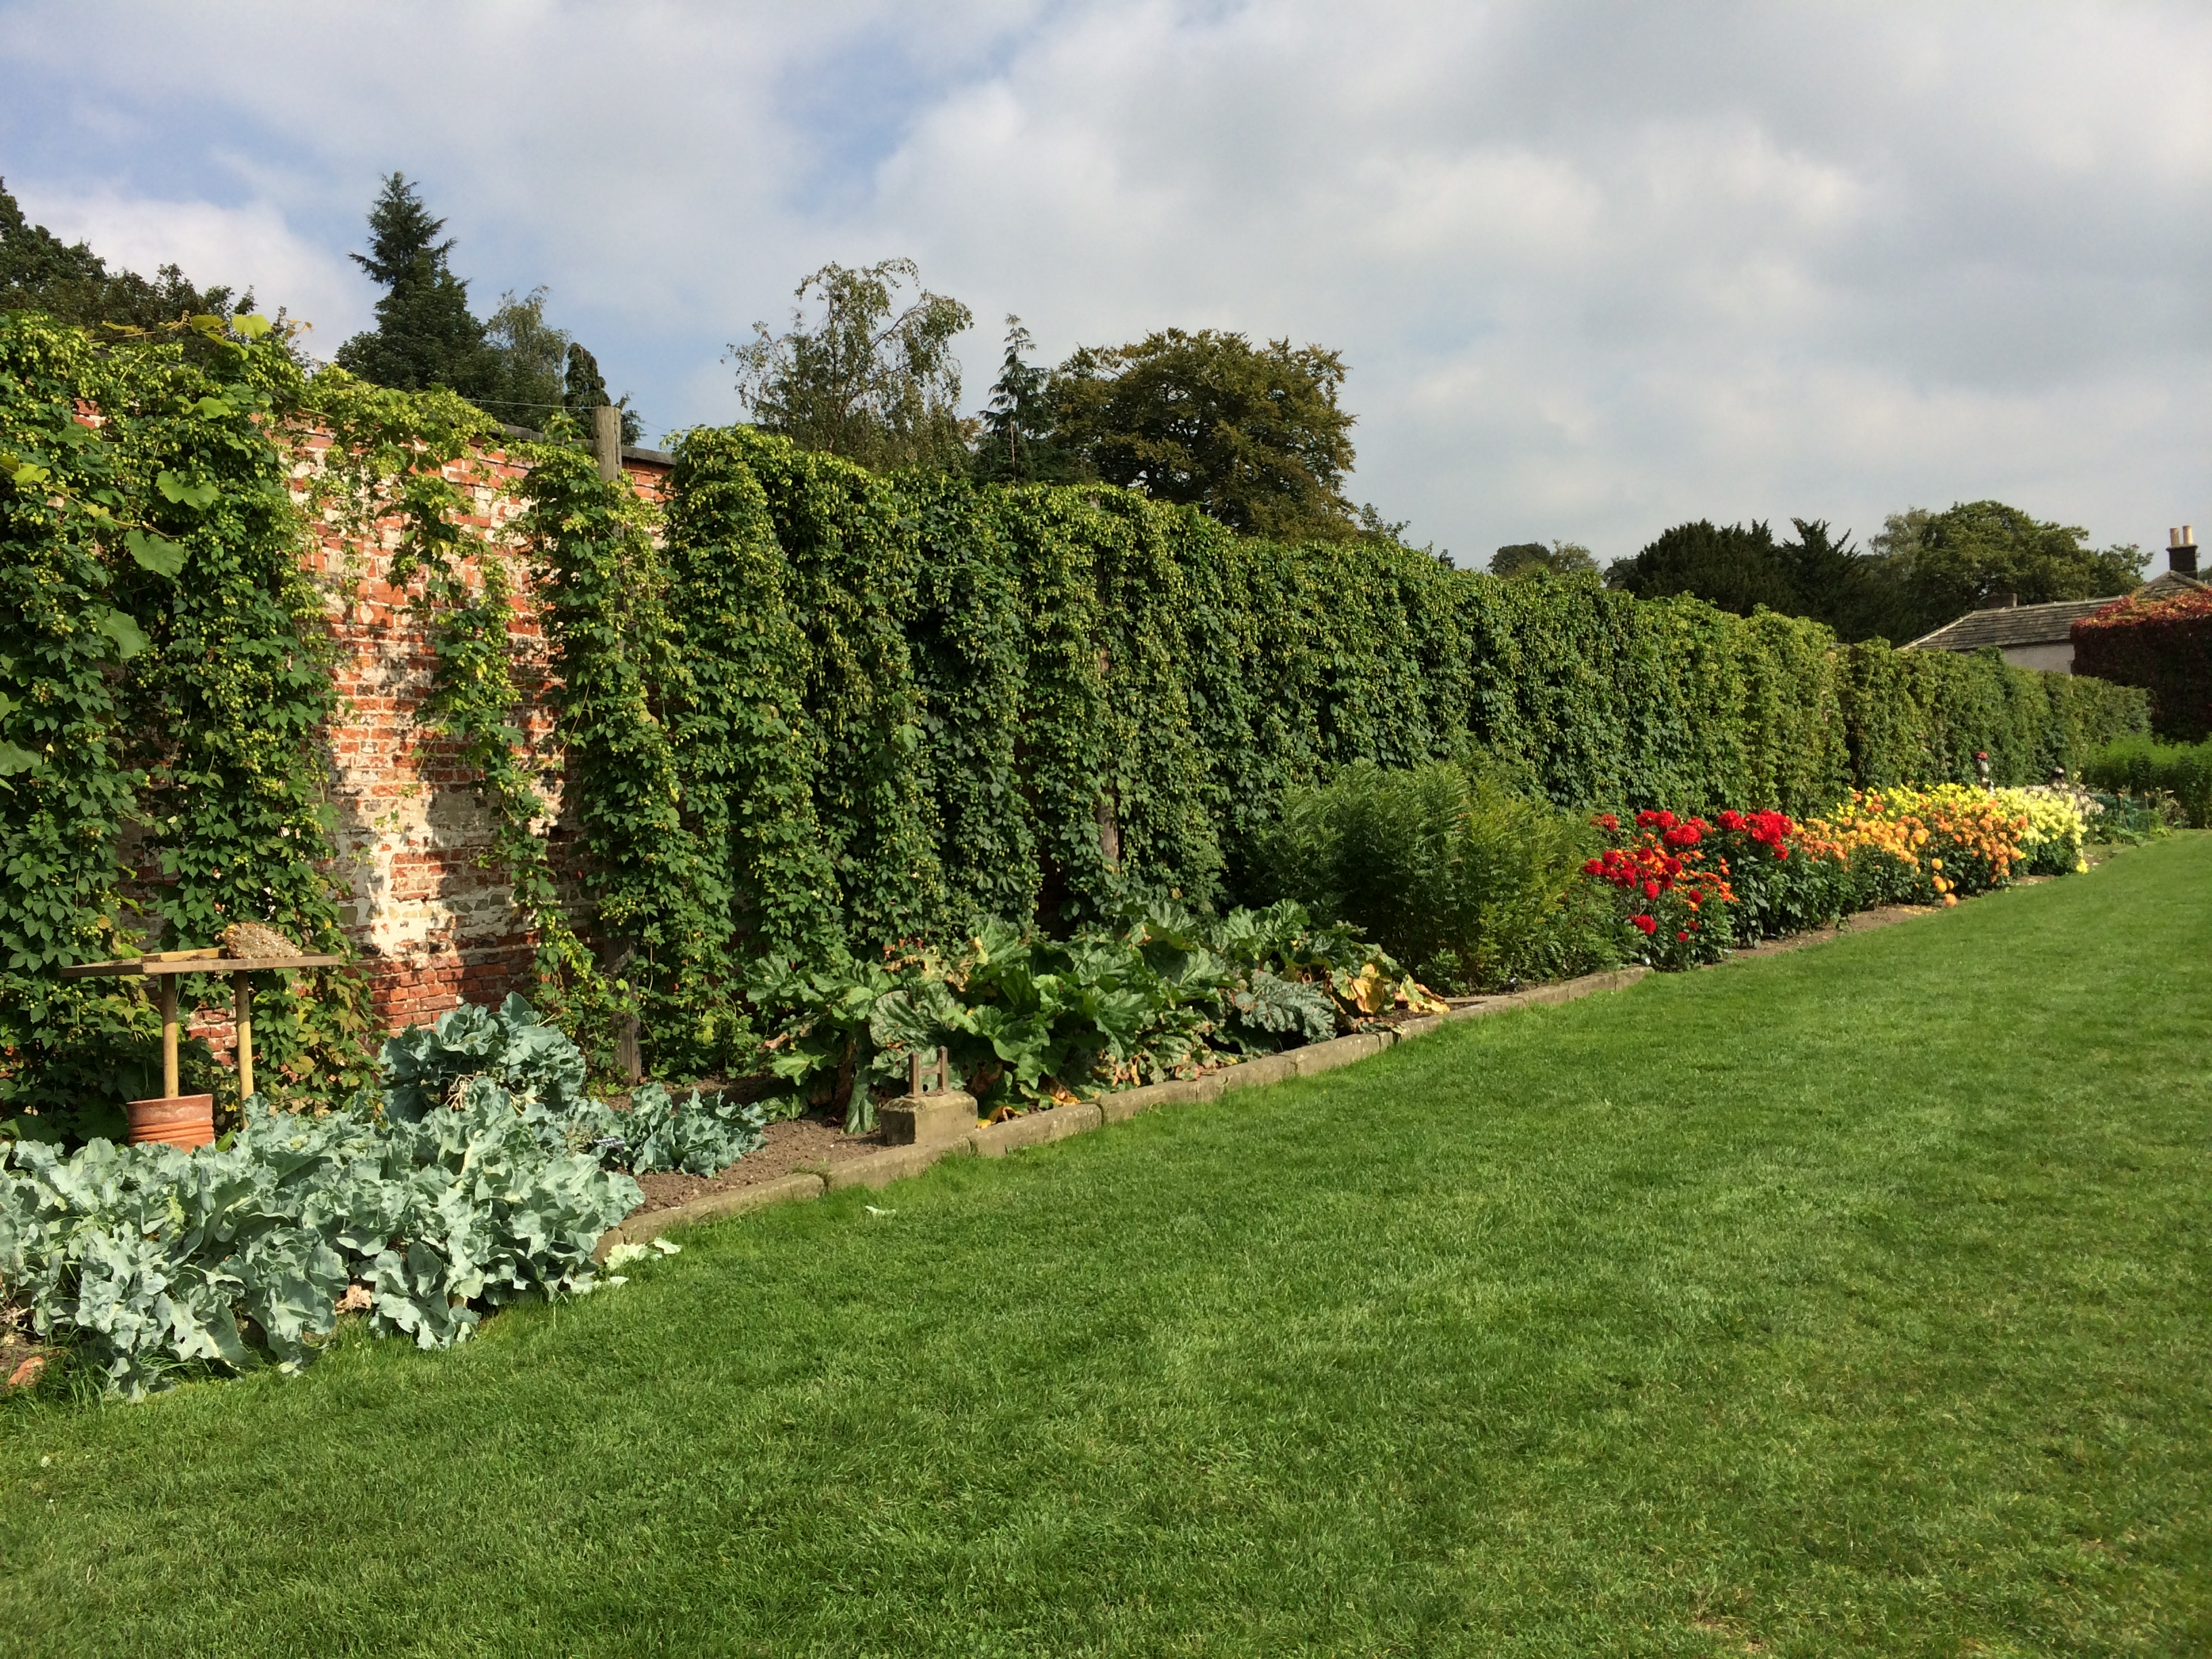 Harewood House has an popular walled garden